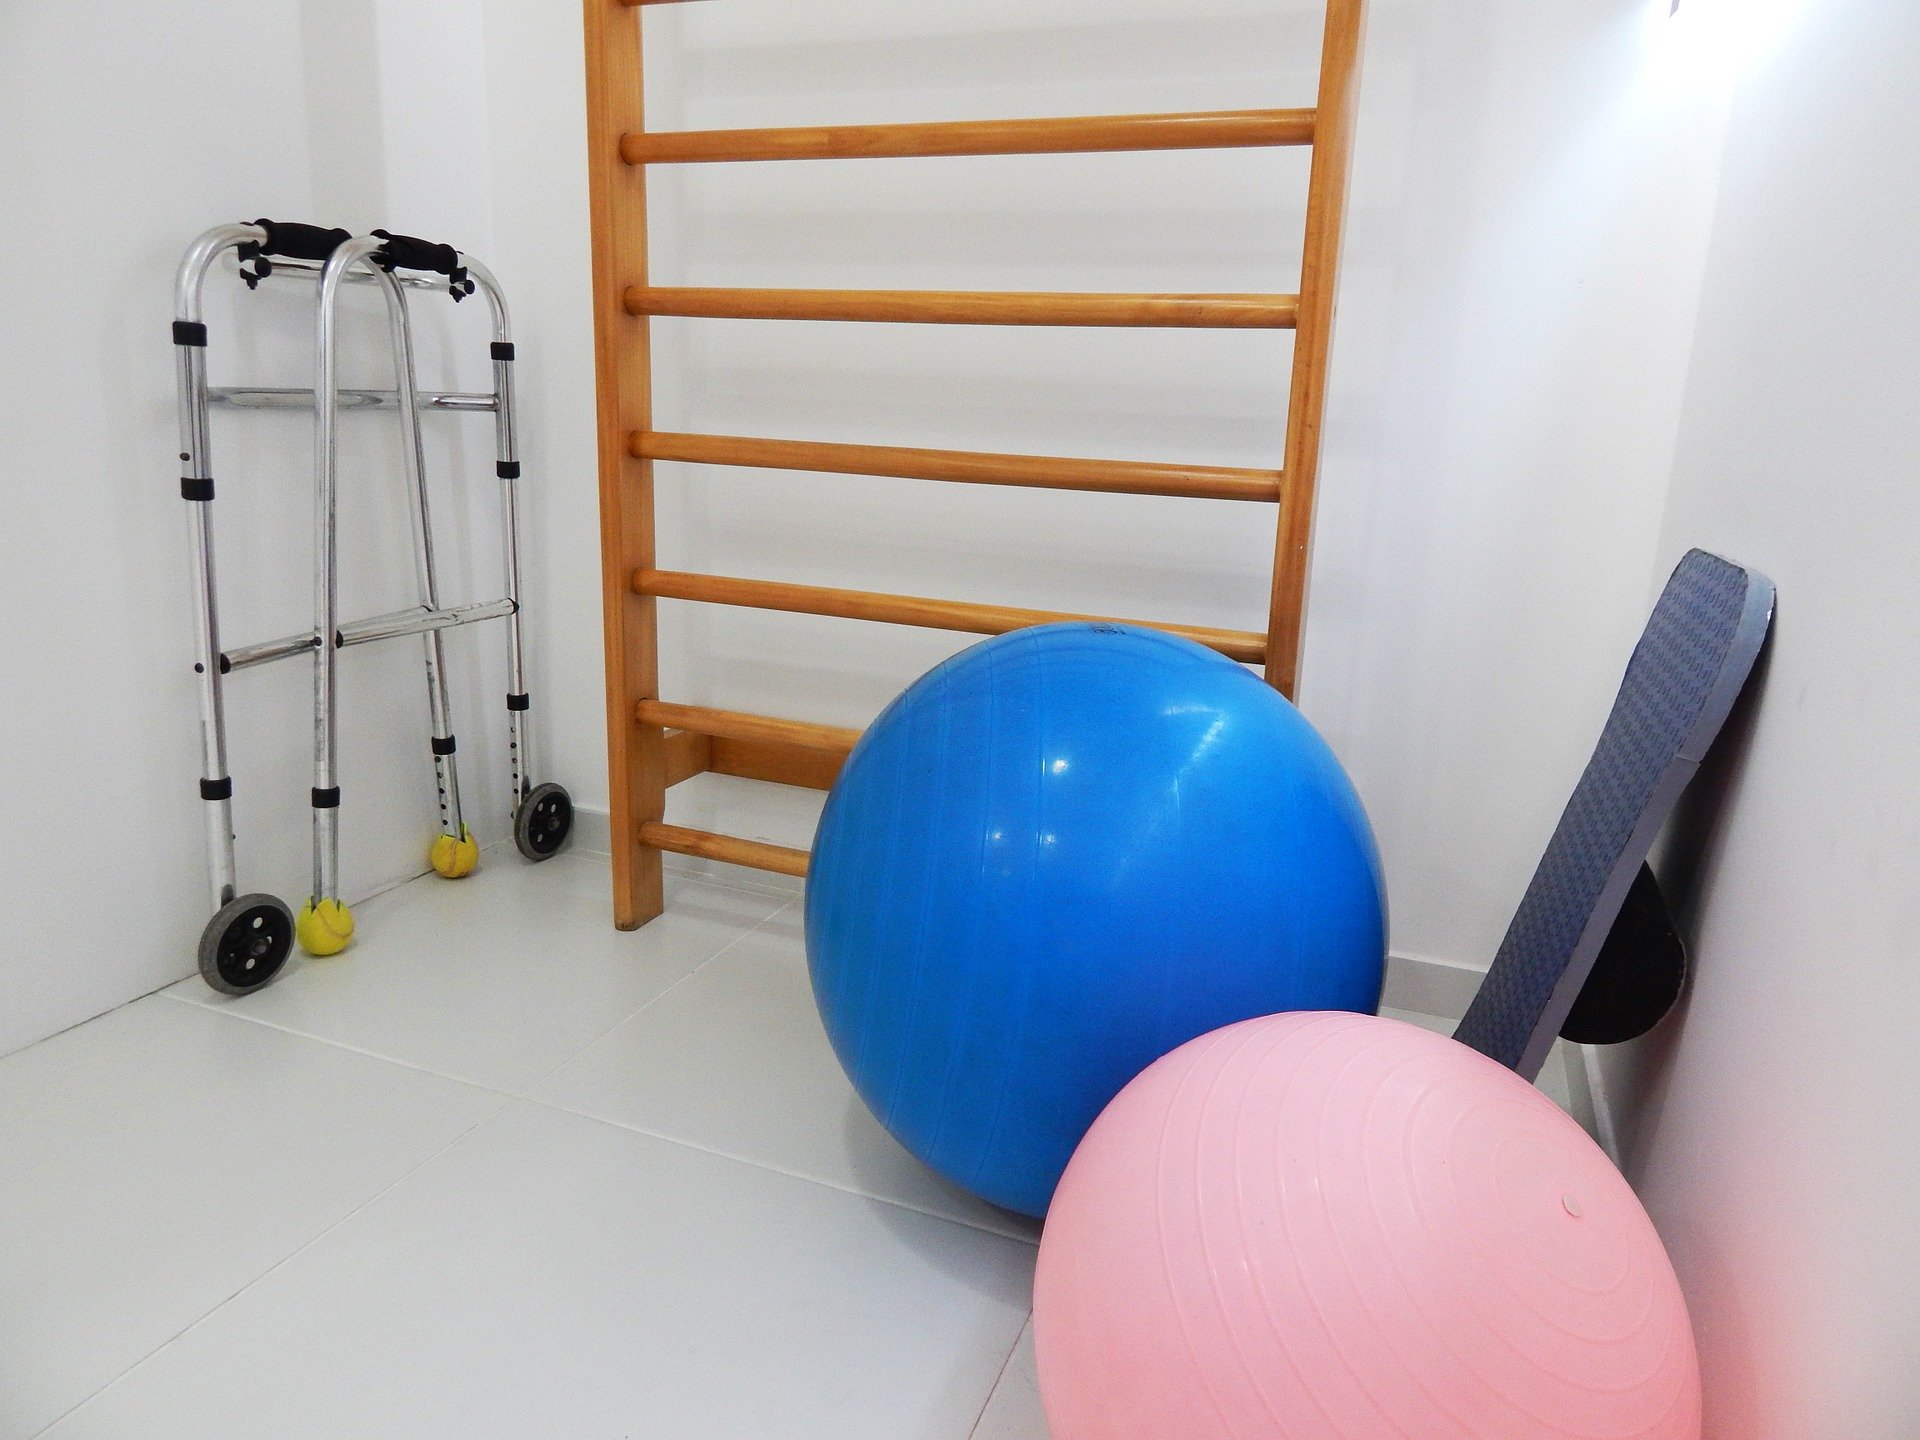 performance physical therapy in franklin, franklin wi physical therapy, ksr performance physical therapy